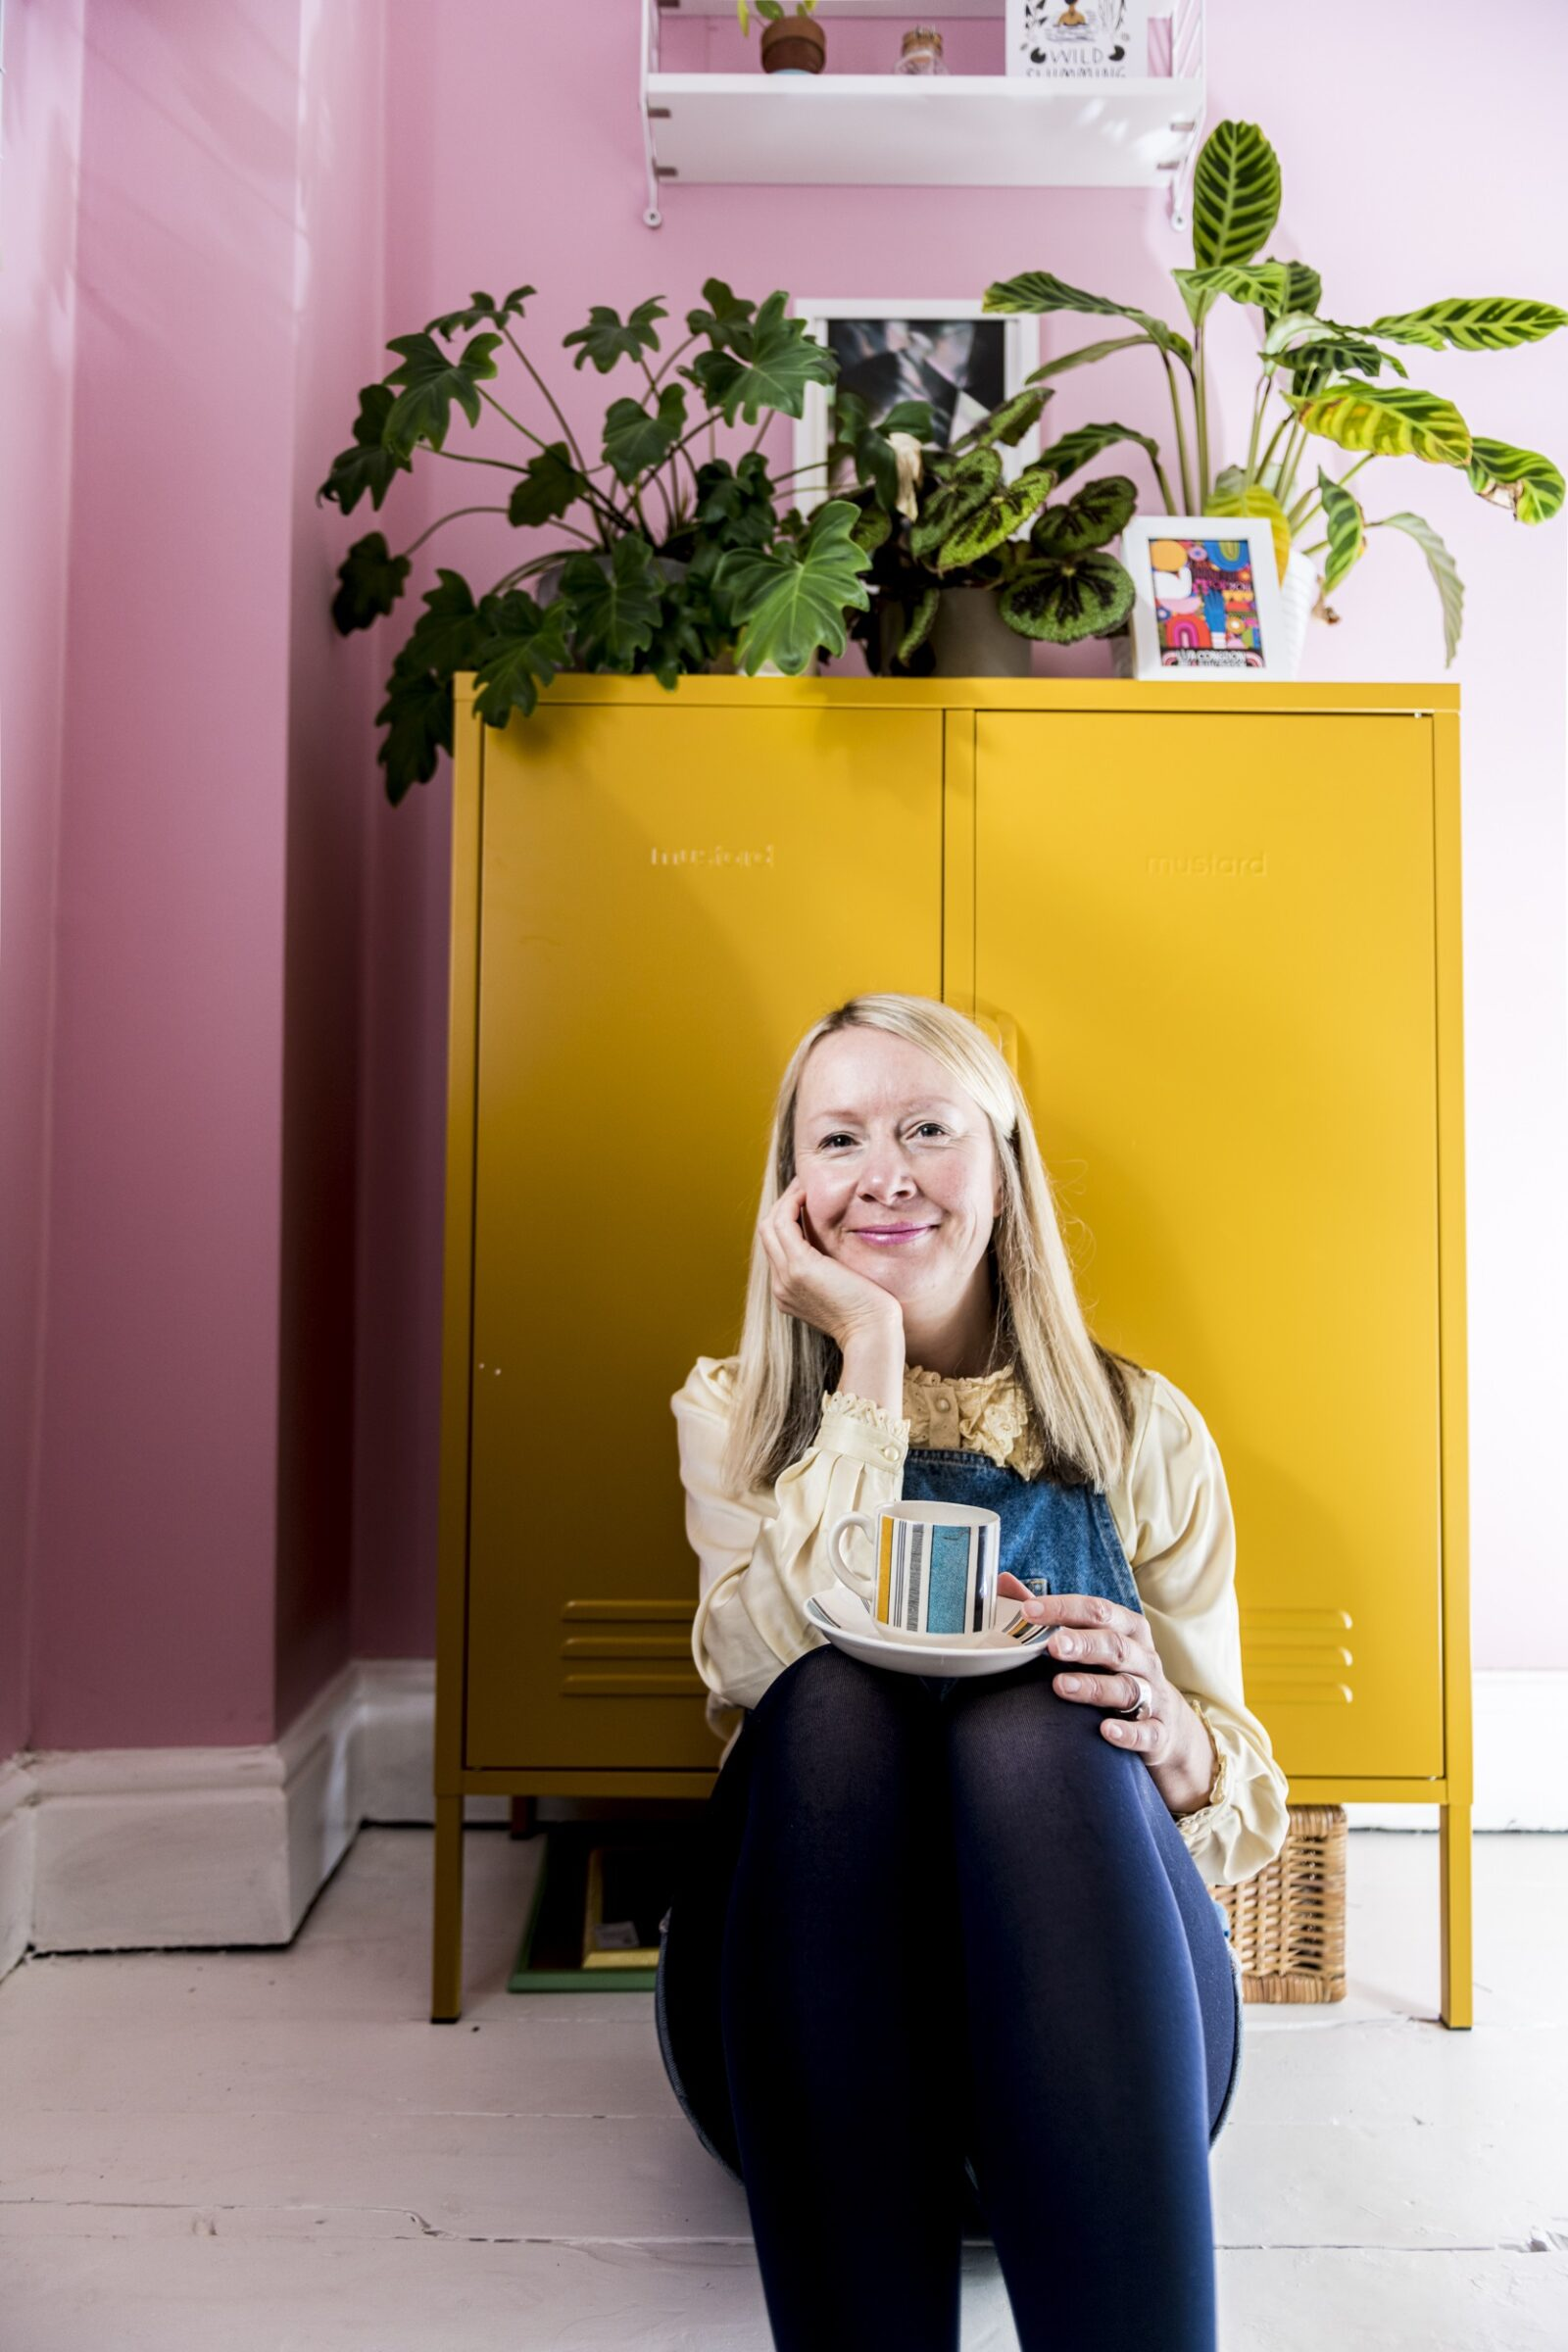 Katya Willems, Instagram expert sitting down in front of a yellow filing cabinet.